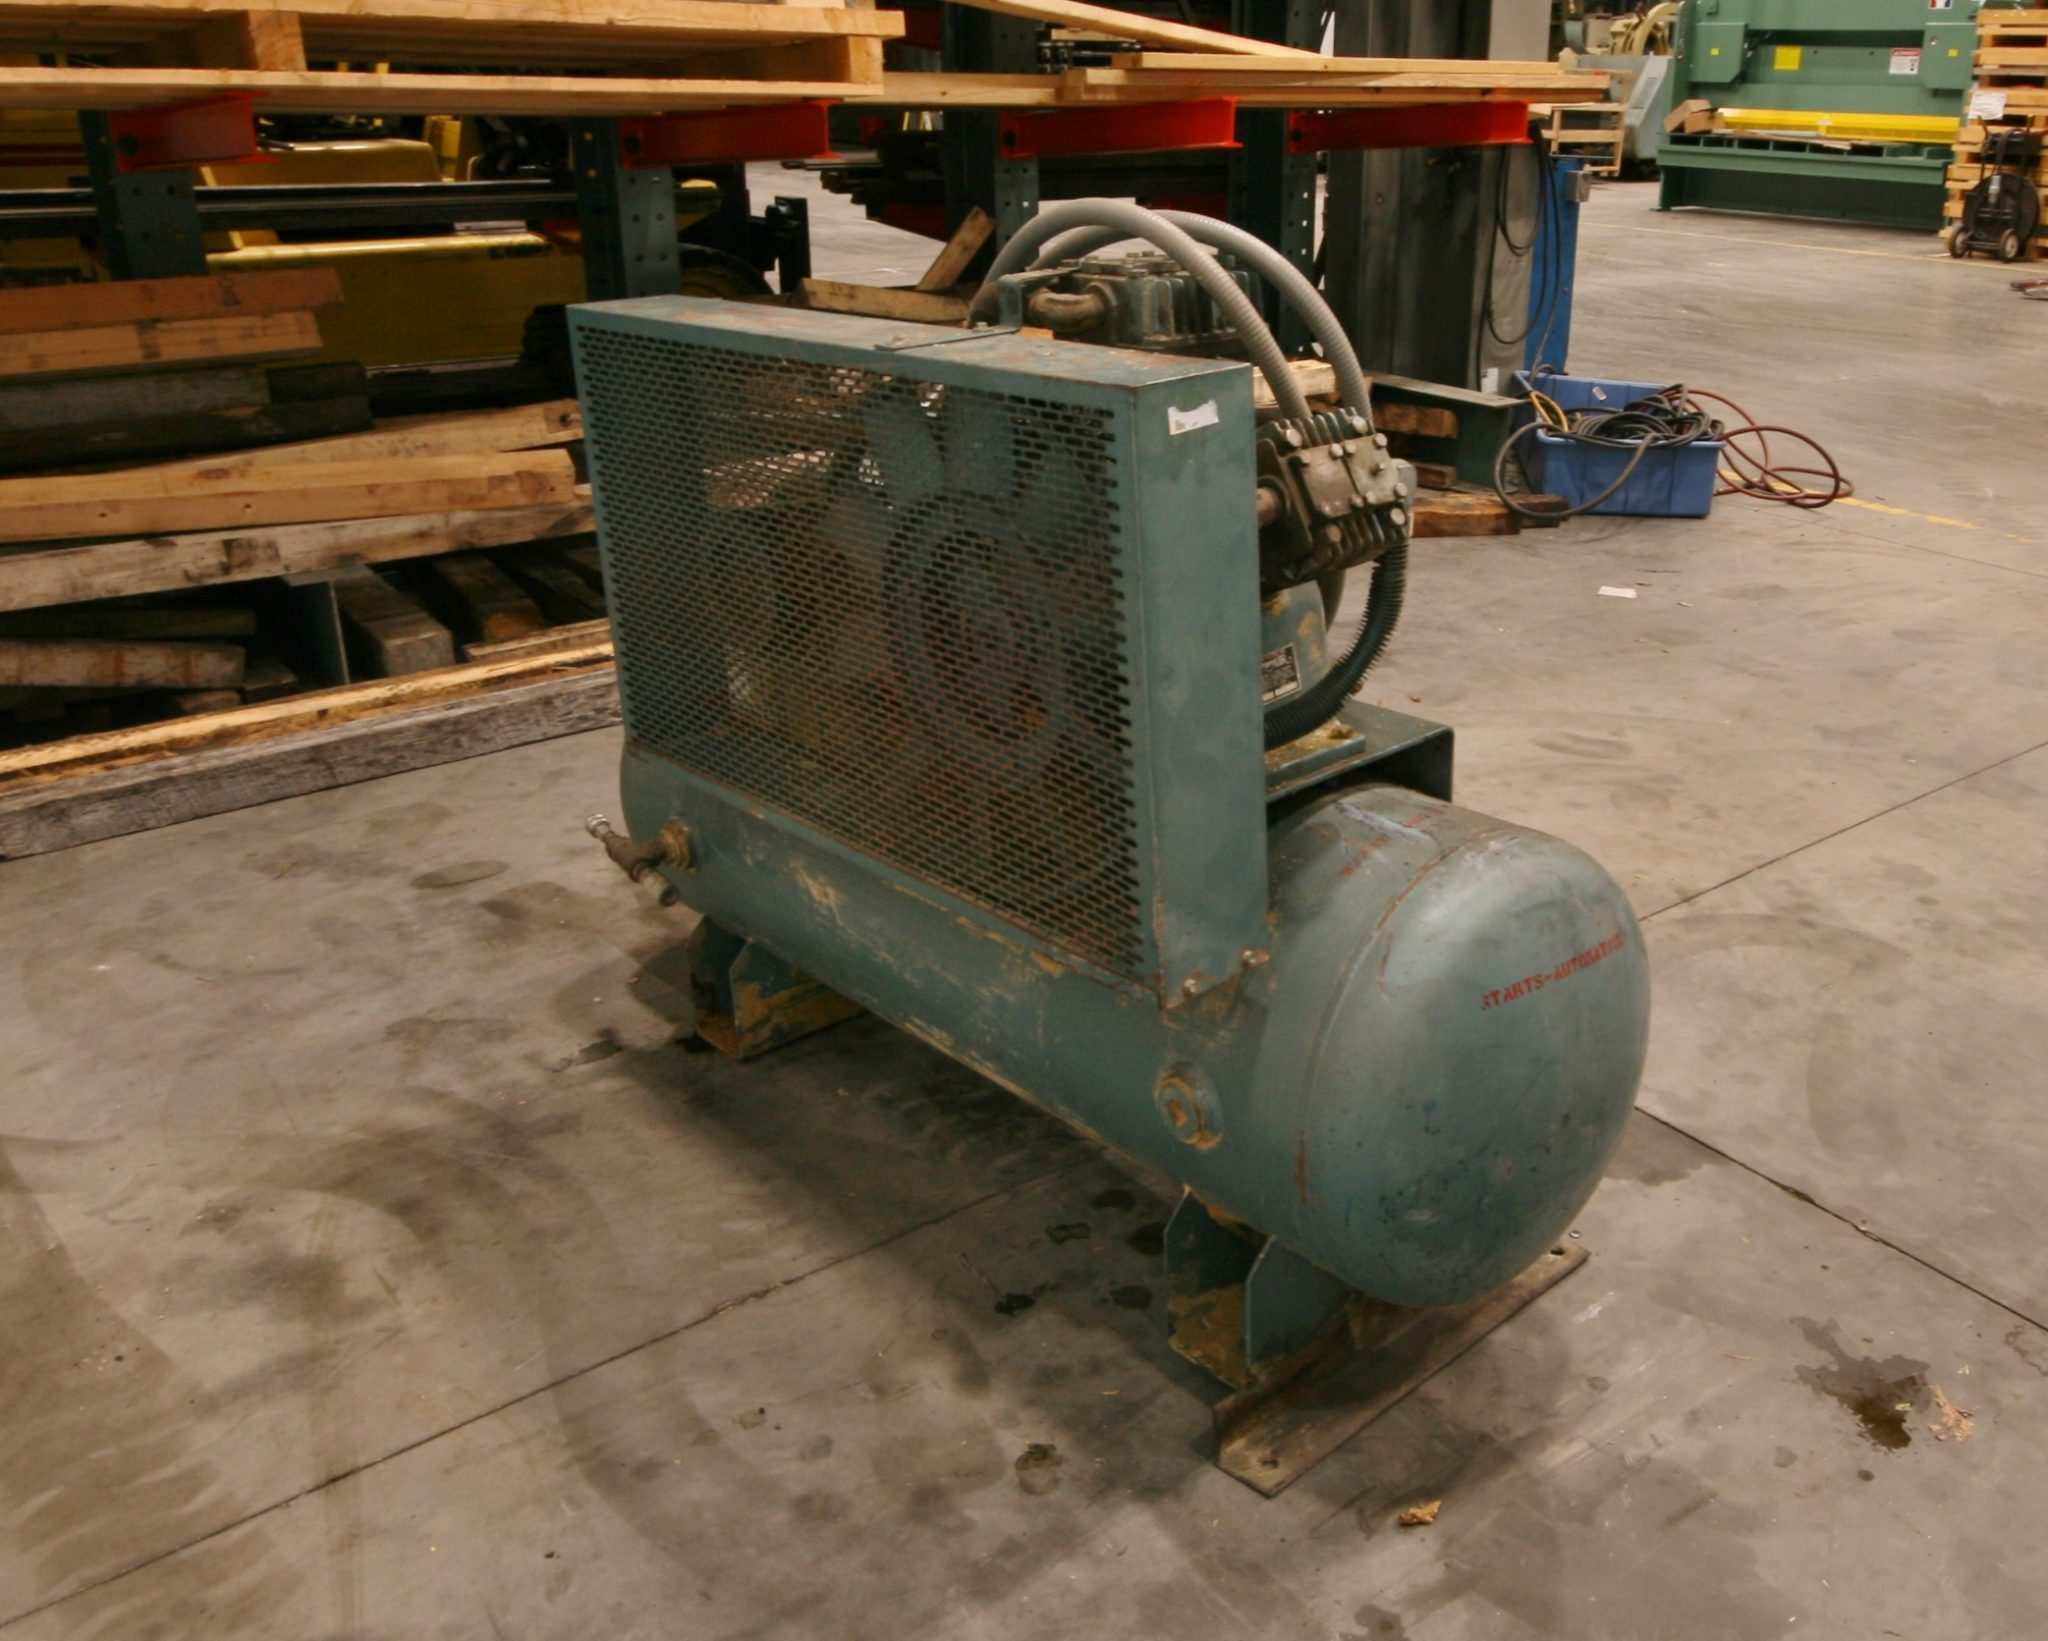 Curtis 10 HP Air Compressor, Model E-71